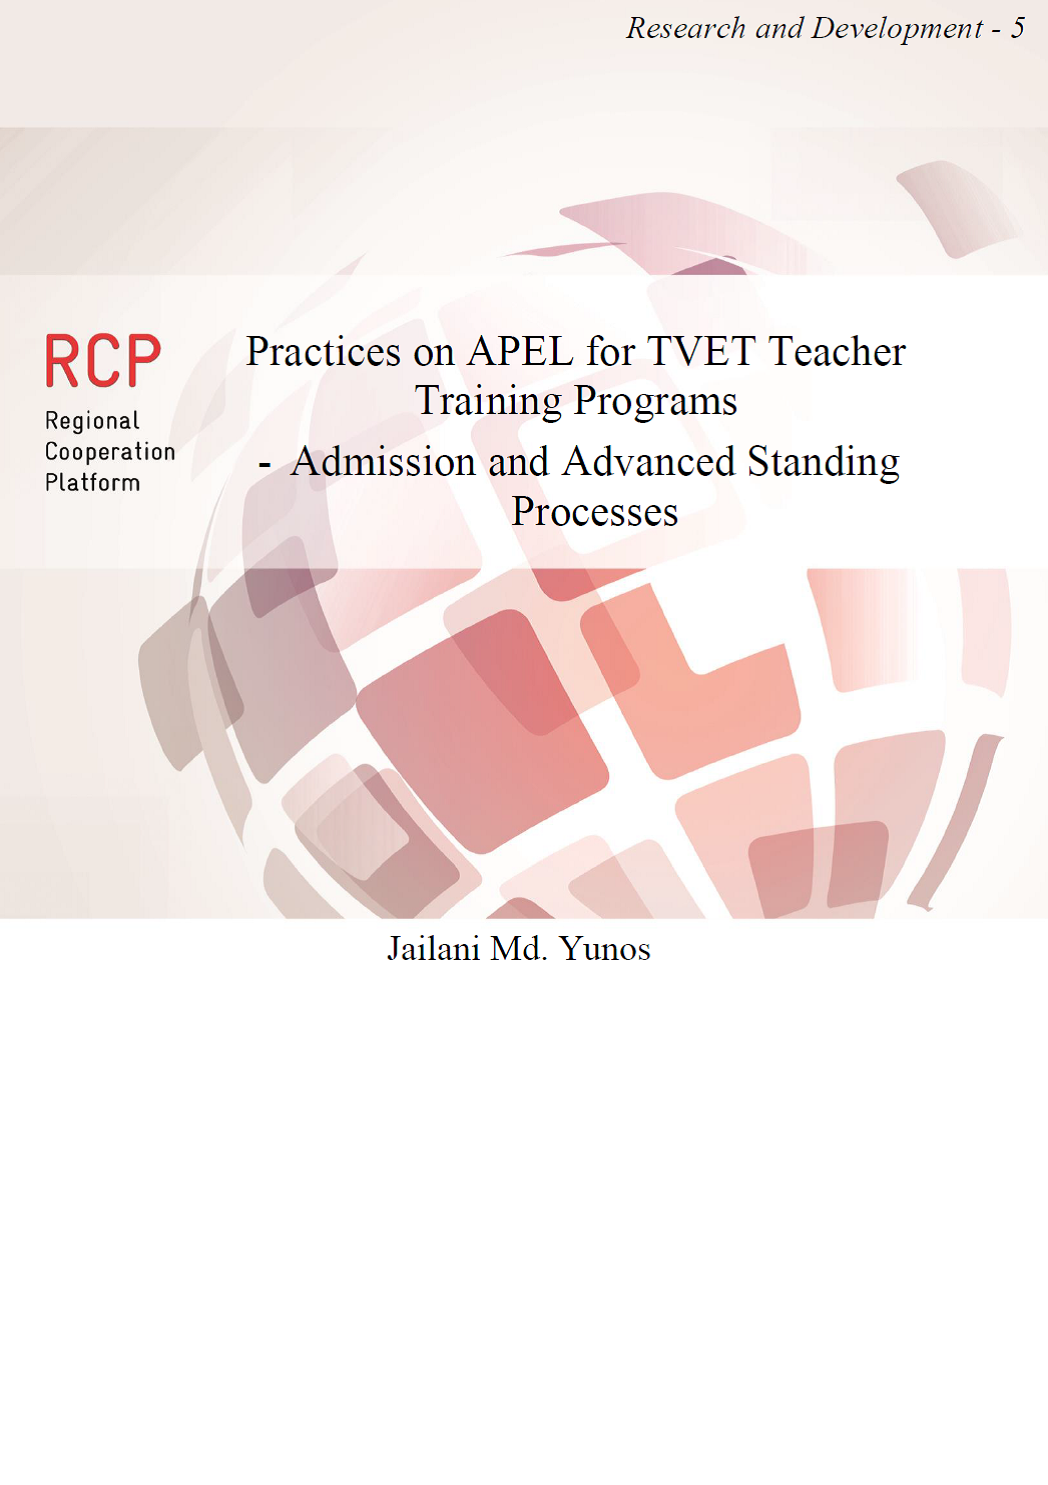 Practices on APEL for TVET Teacher Training Programs  - Admission and Advanced Standing Processes